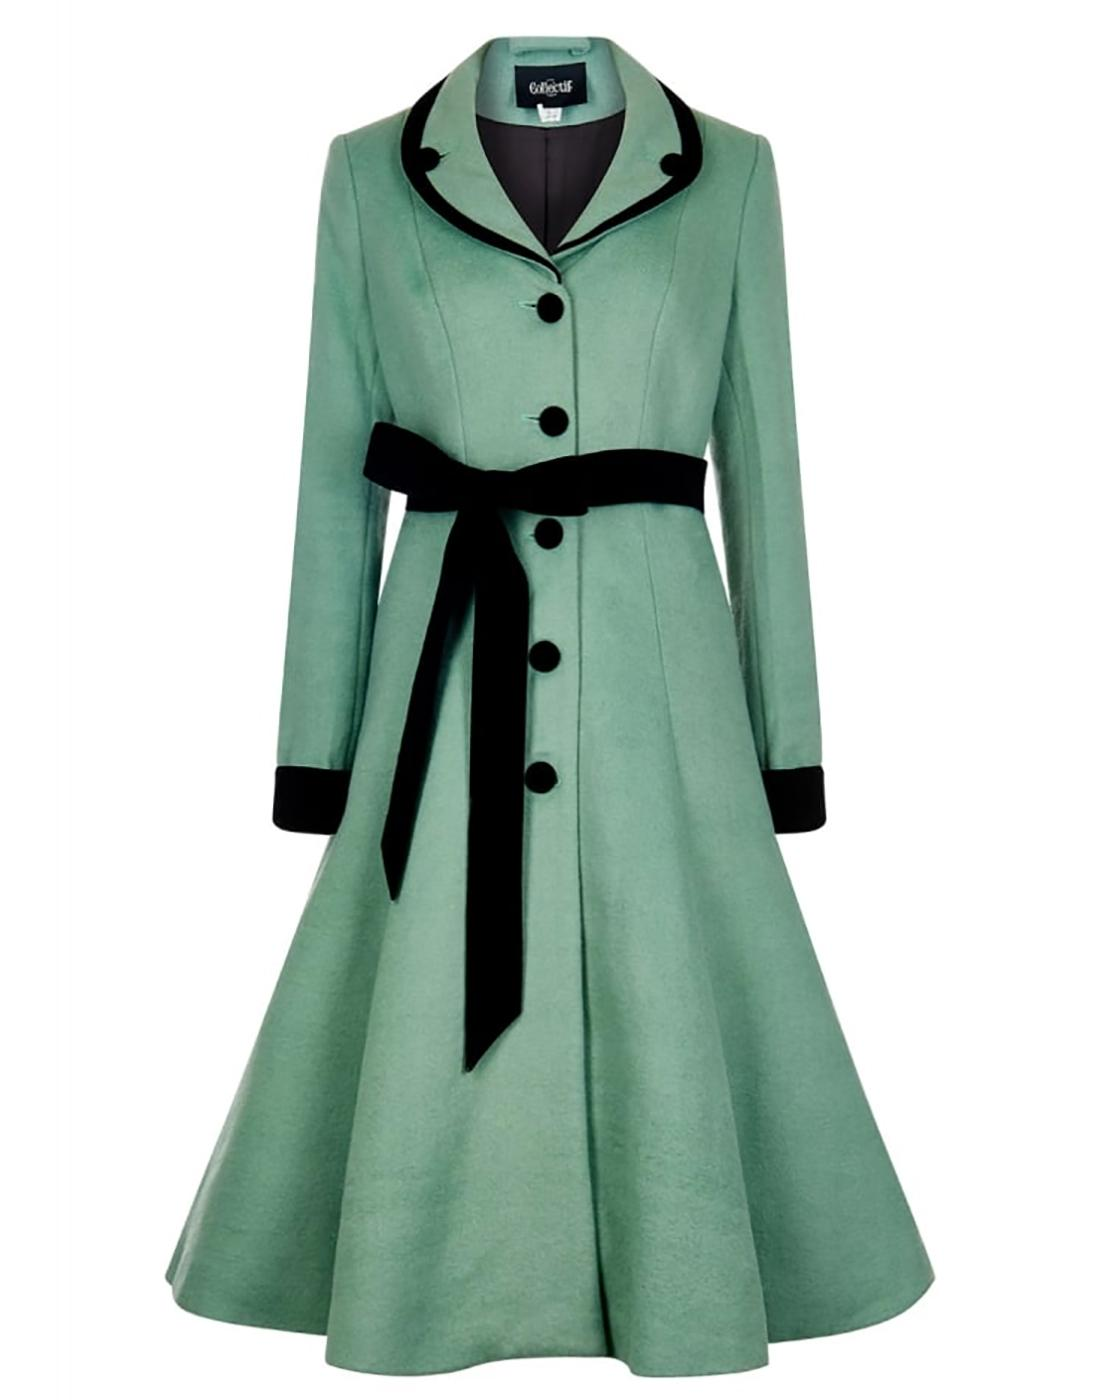 Imma COLLECTIF Retro 50s Vintage Princess Coat